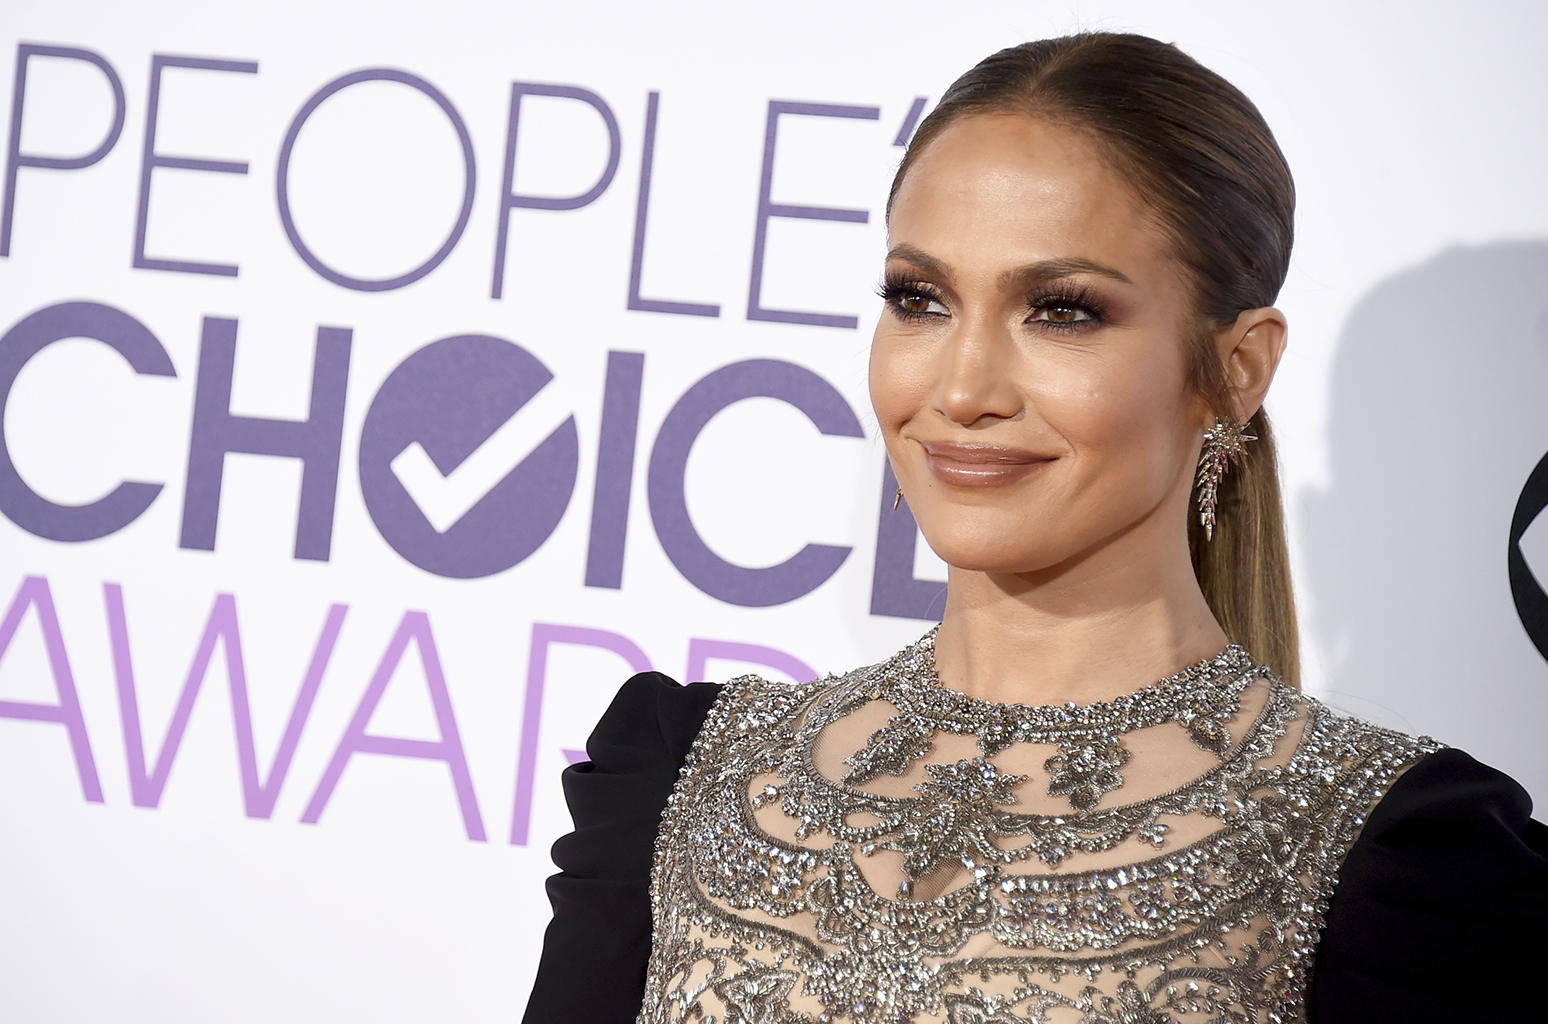 Documental de MTV muestra ascenso a la fama de Jennifer Lopez